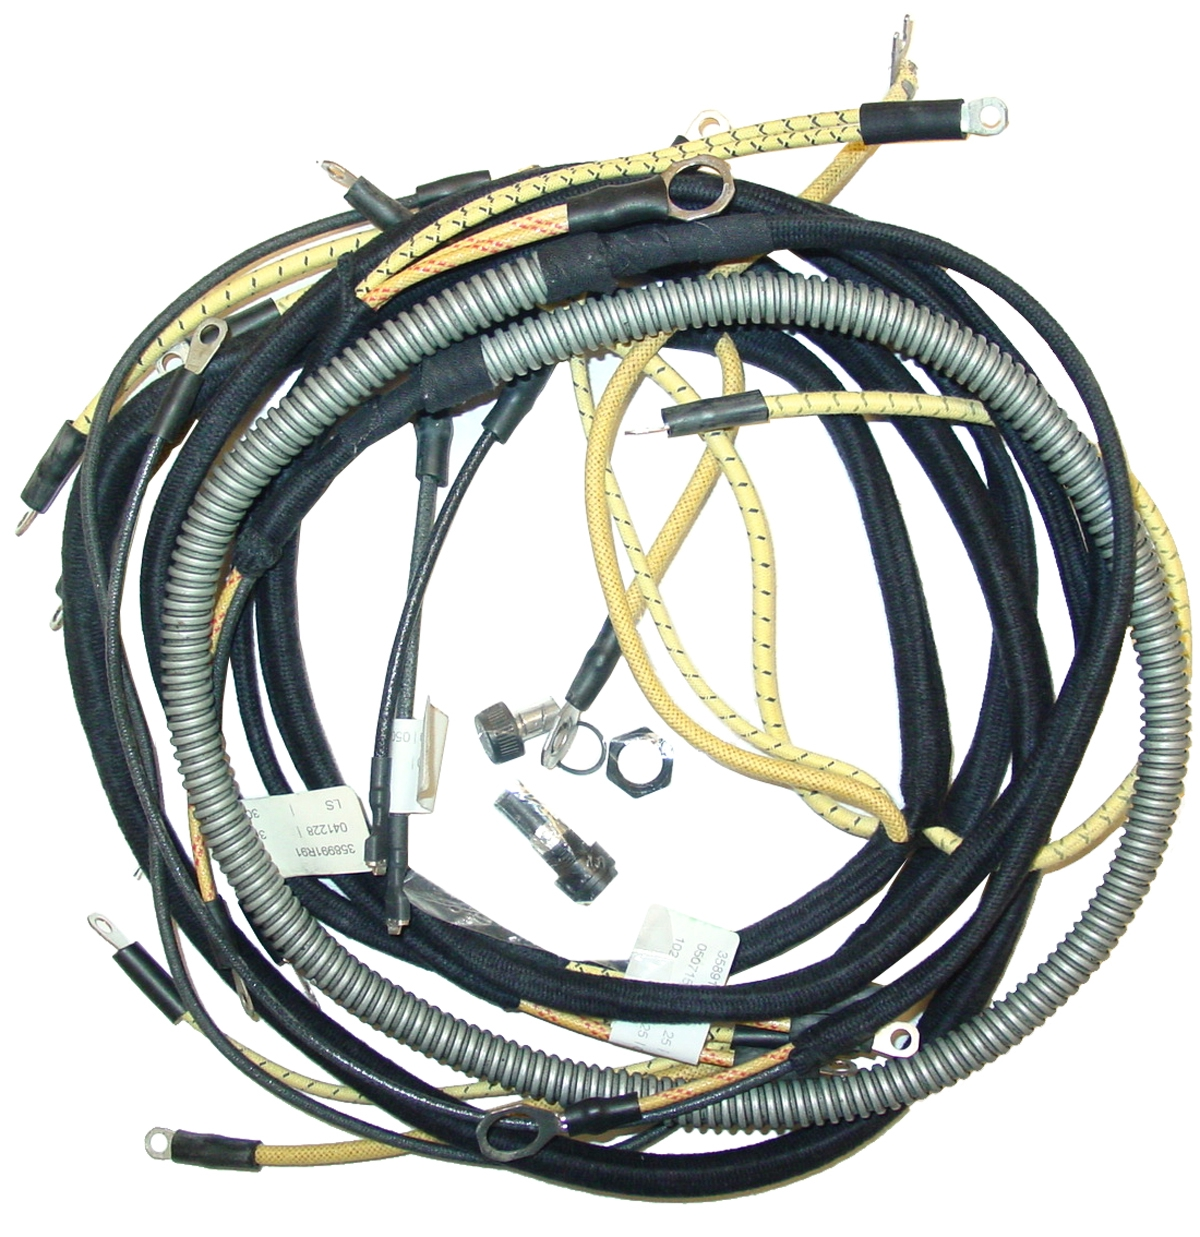 hight resolution of wiring harness case ih parts case ih tractor parts international tractor wiring harness international tractor wiring harness